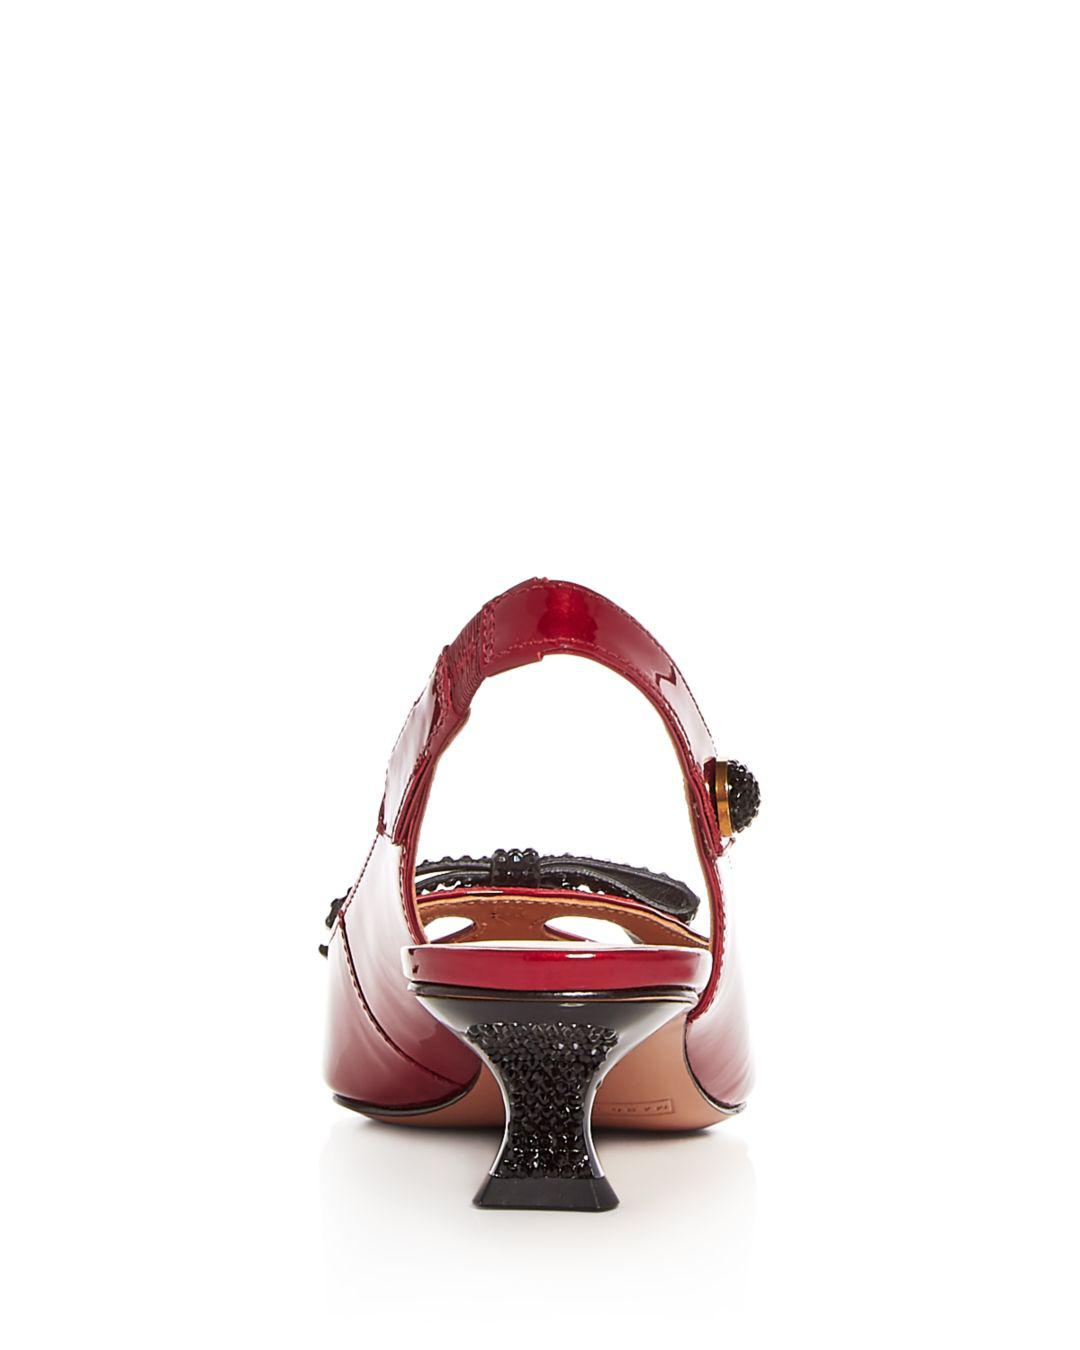 23de7b9c330 Lyst - Marc Jacobs Women s Abbey Patent Leather Slingback Pumps in Red